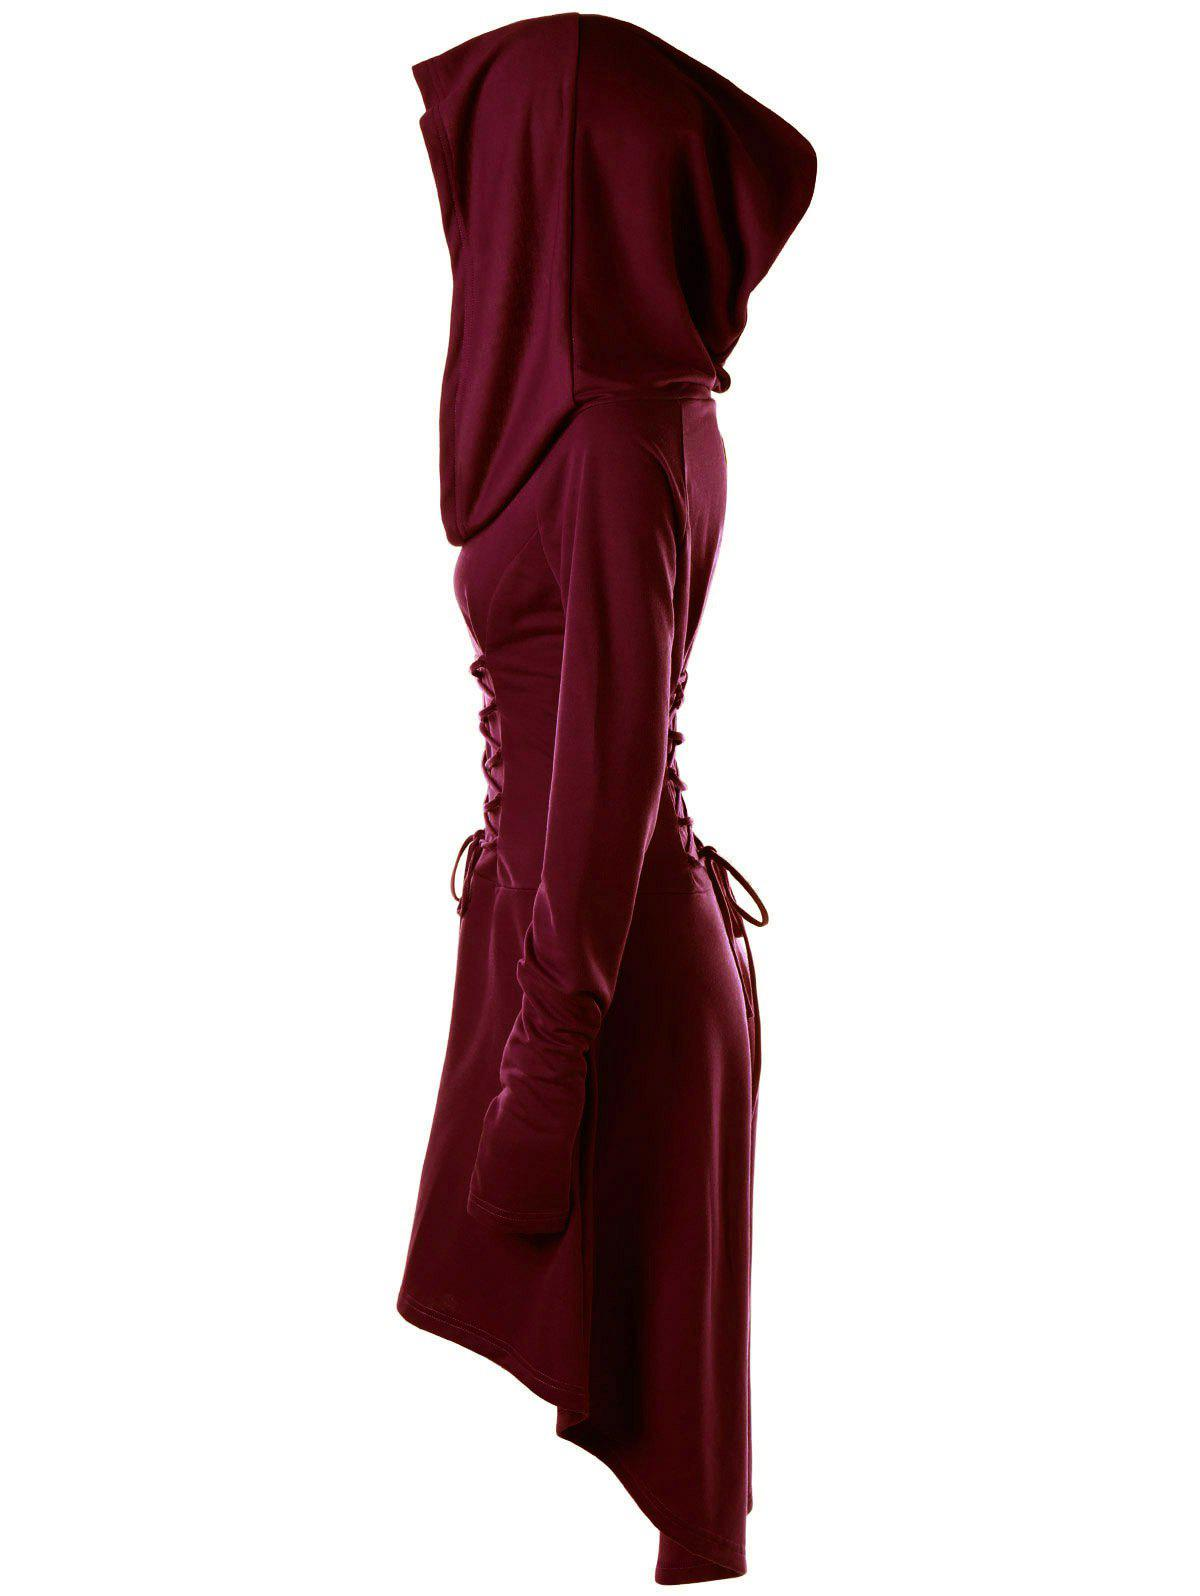 Lace Up Hooded High Low Dress - WINE RED L